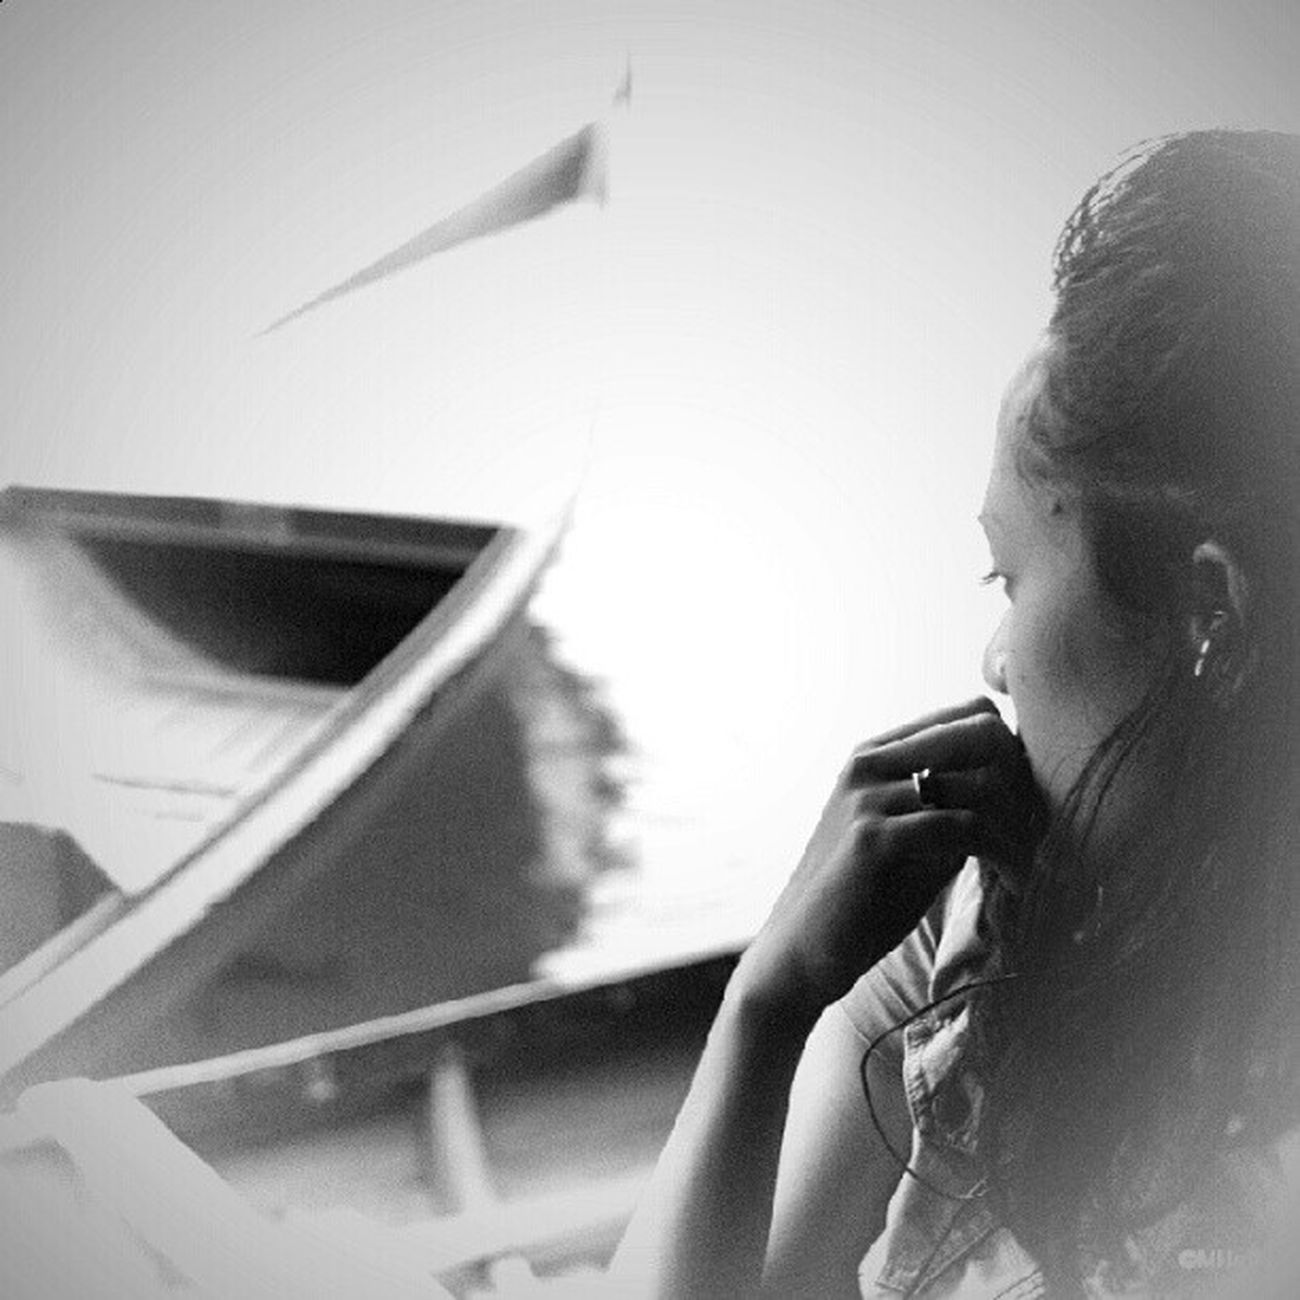 Day dreaming.. #d70 #recycle #flashback #sampireun #Indonesia #monochrome #bw Sampireun D70 INDONESIA Instasighting Nikon Monochrome Recycle Bw Flashback Instamood Igers Statigram Instadroid Instaedit Followgram Nikond70 Nikonphotography